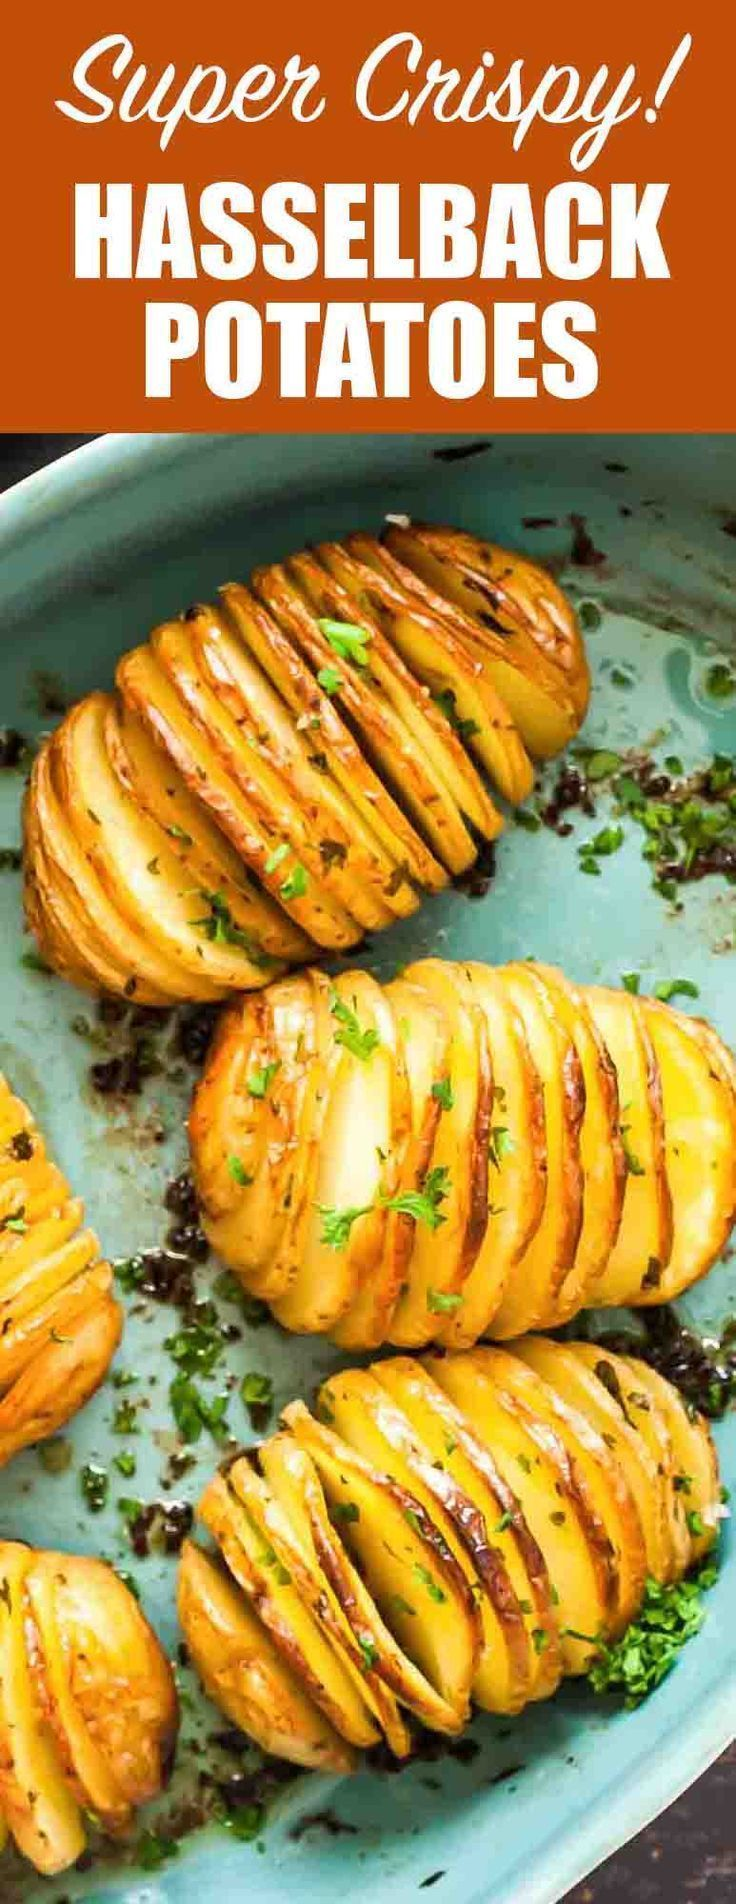 Mar 19, 2020 – Crispy Hasselback Potatoes! 6 Yukon gold potatoes, about 6 ounces each 4 tablespoons unsalted butter, mel…